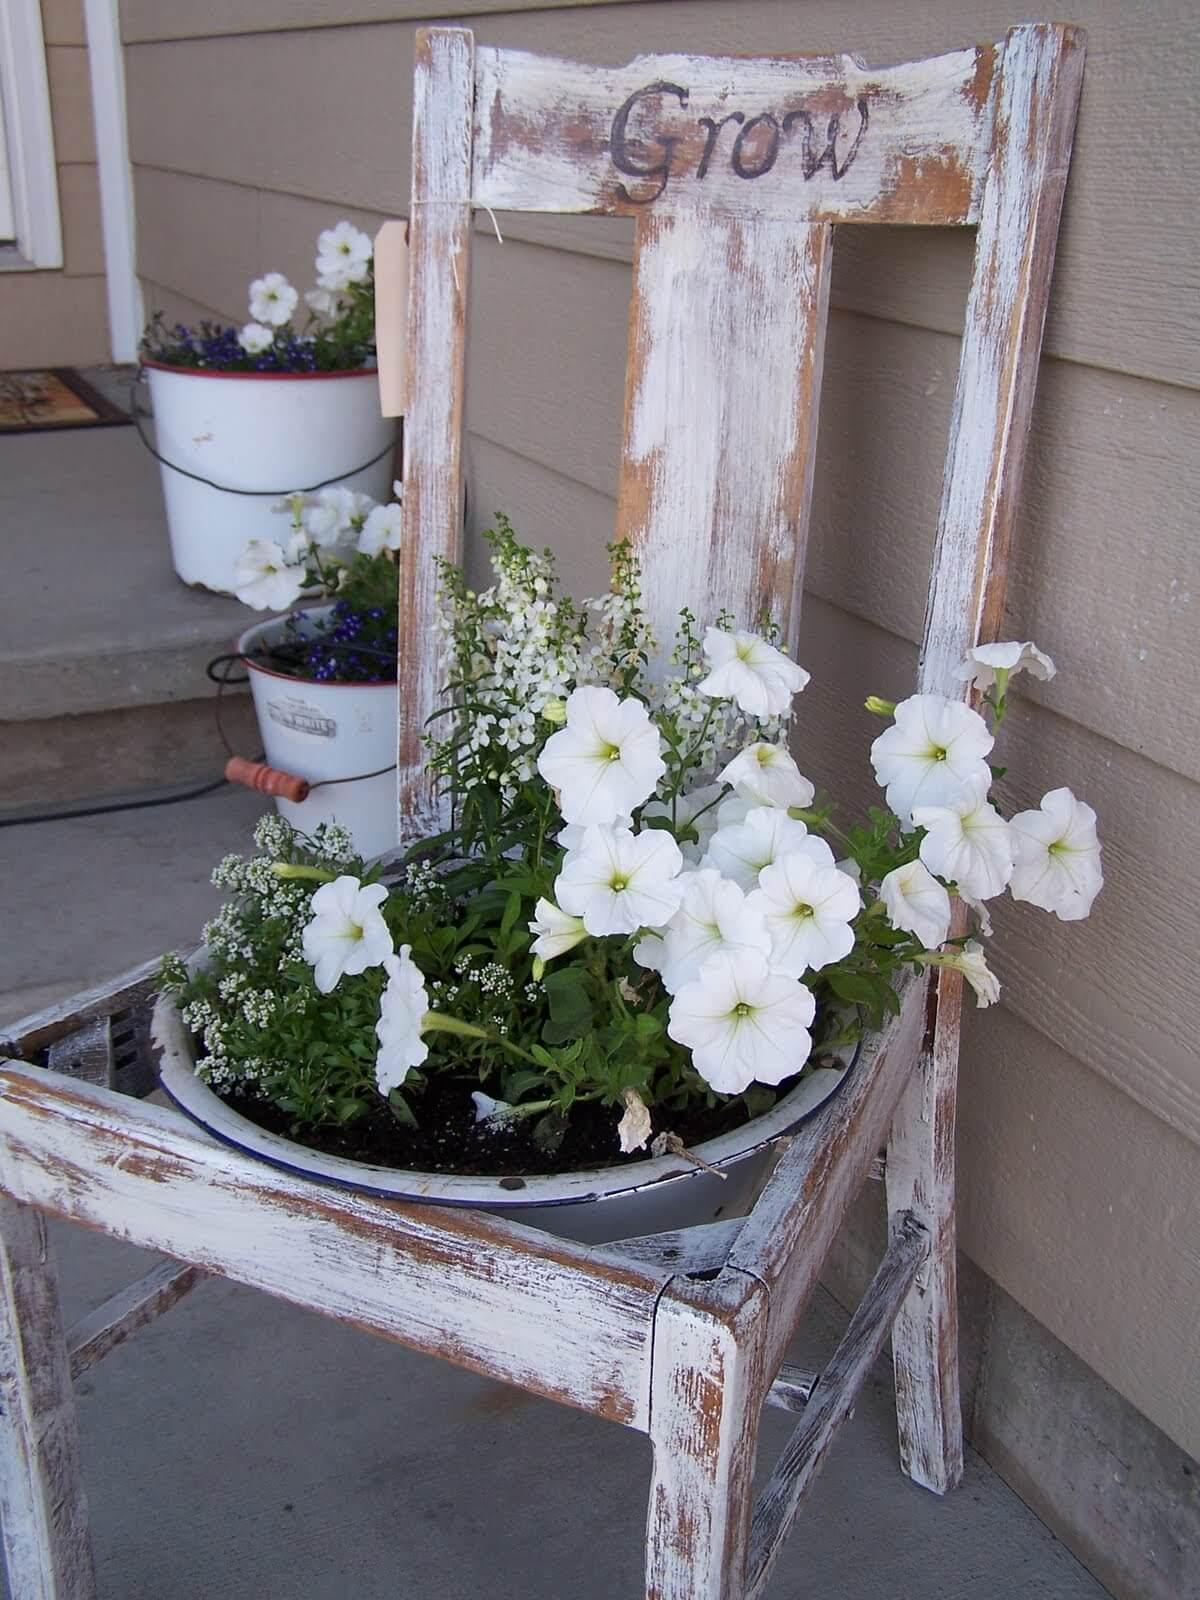 Distressed Wooden Chair With Potted Flower Arrangements